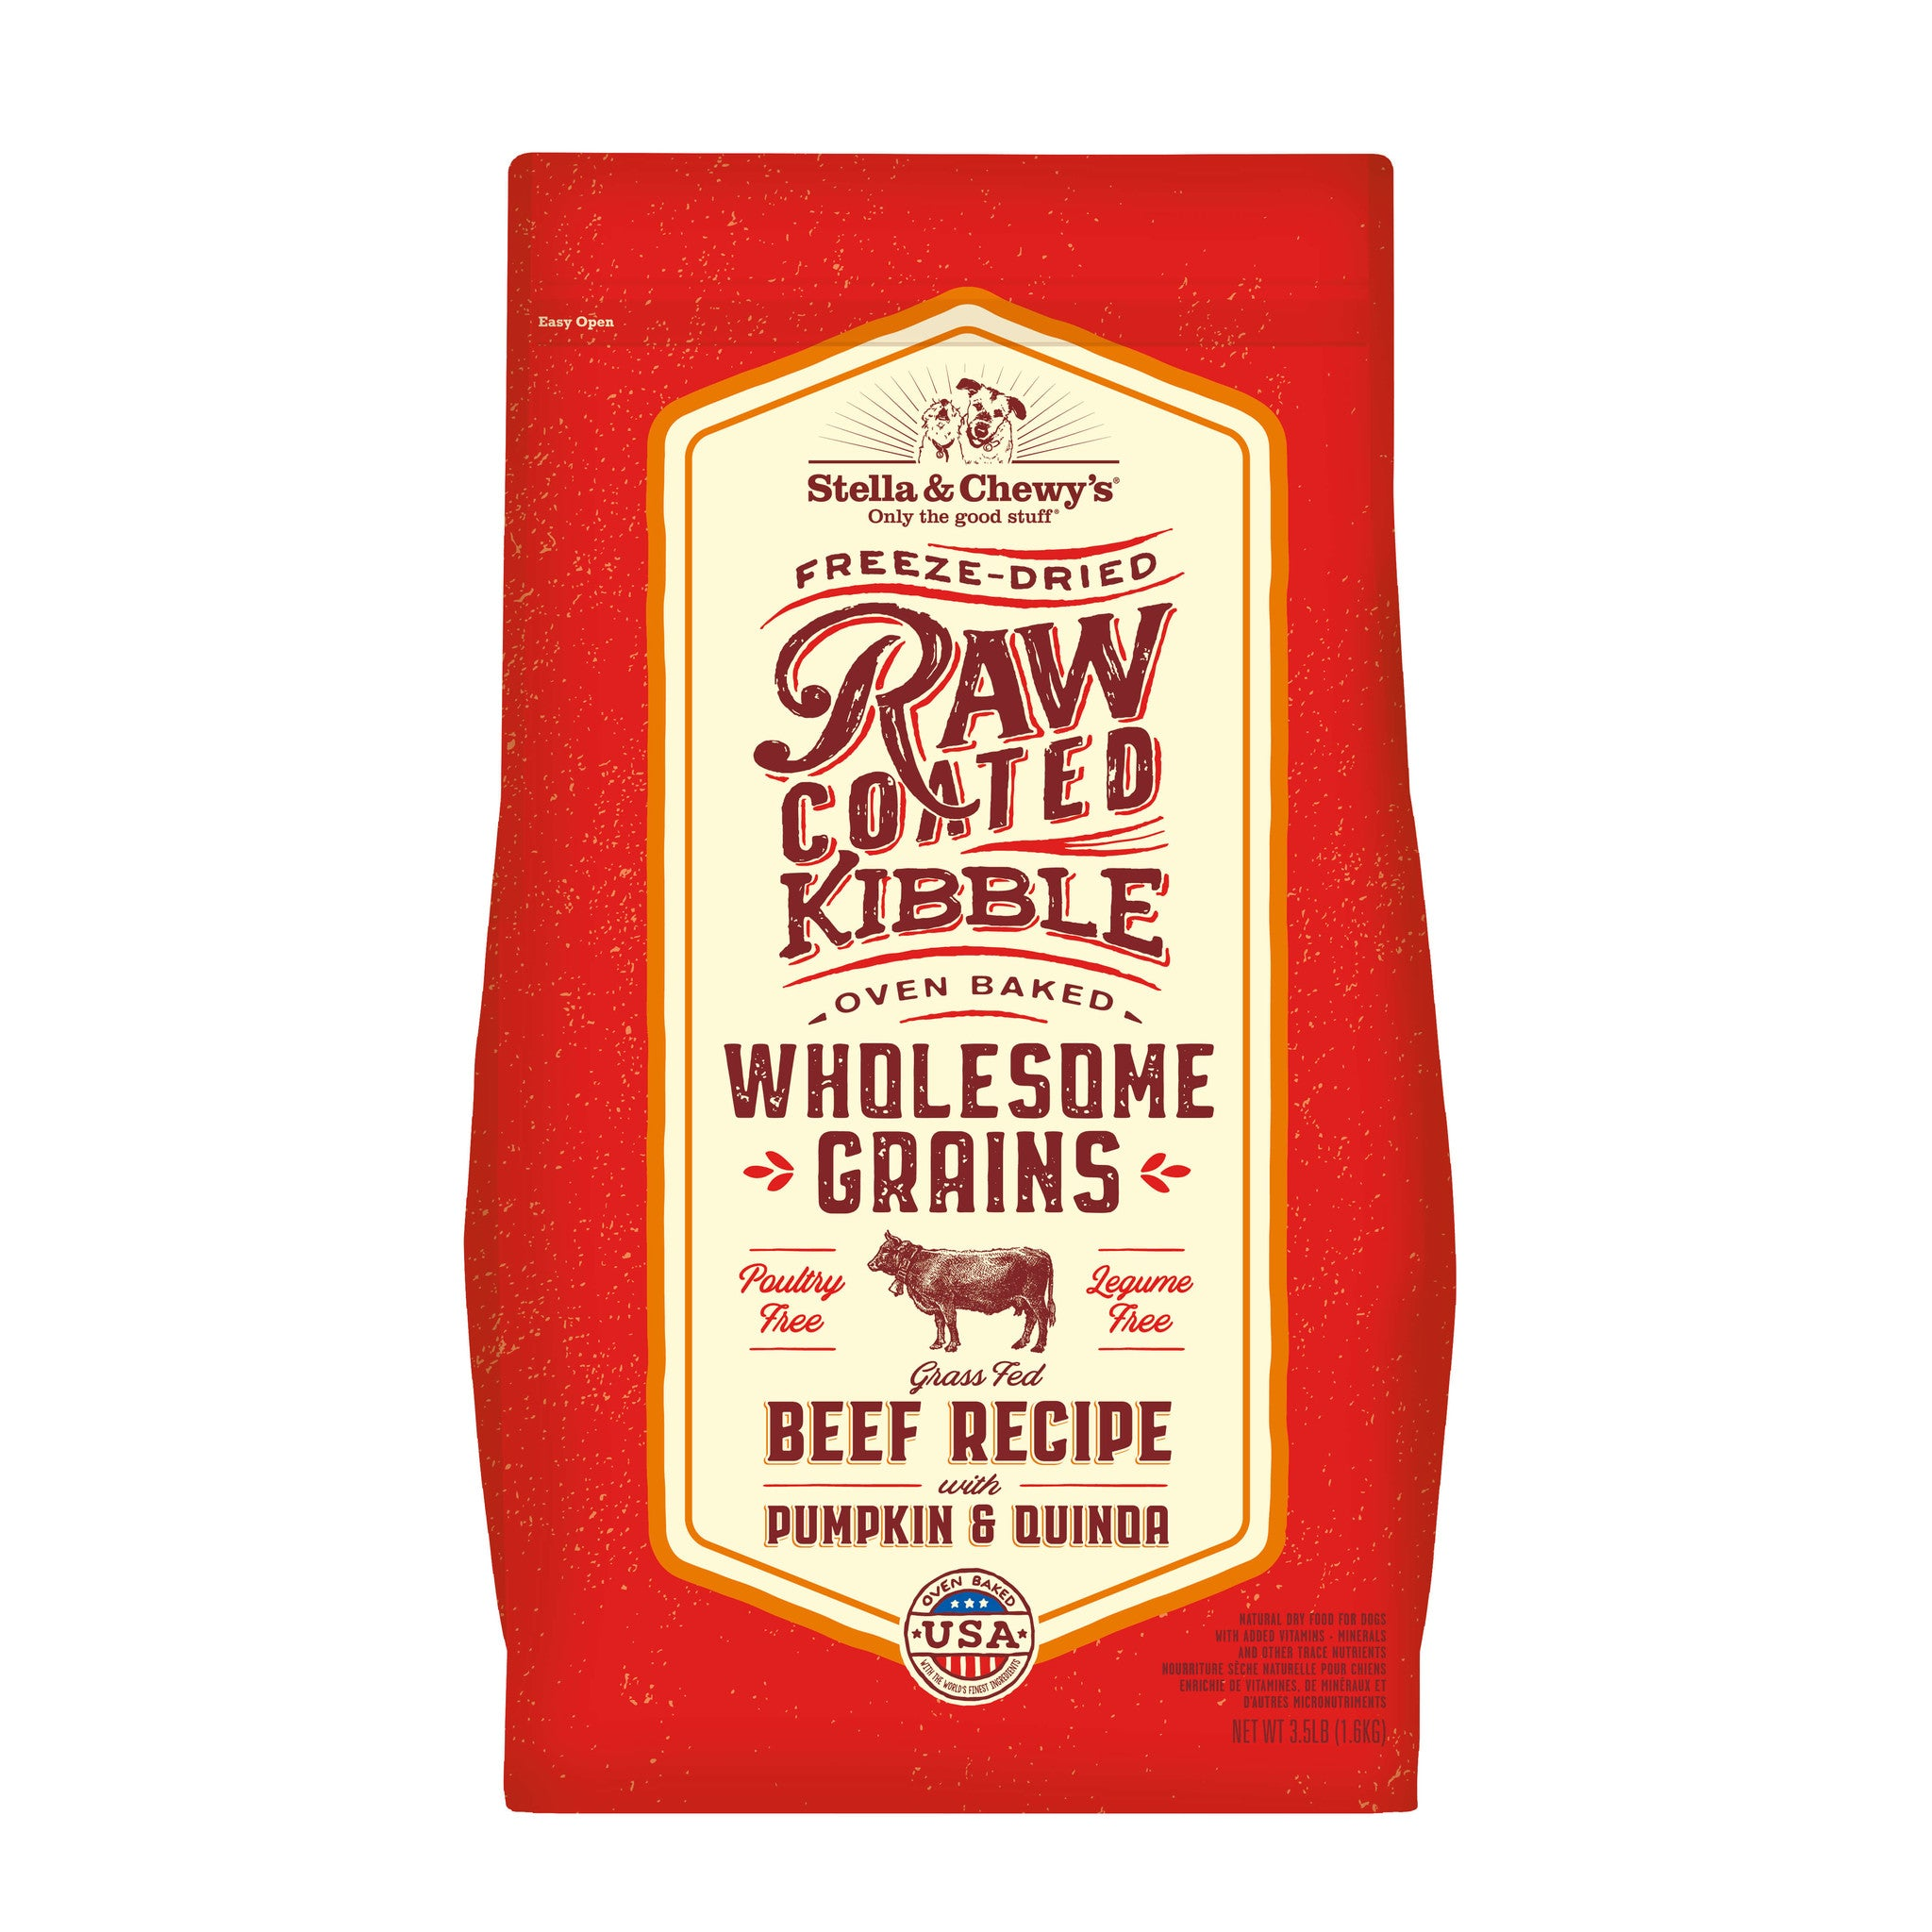 Beef Recipe with Pumpkin & Quinoa Raw Coated Kibble Wholesome Grains - In Store Only